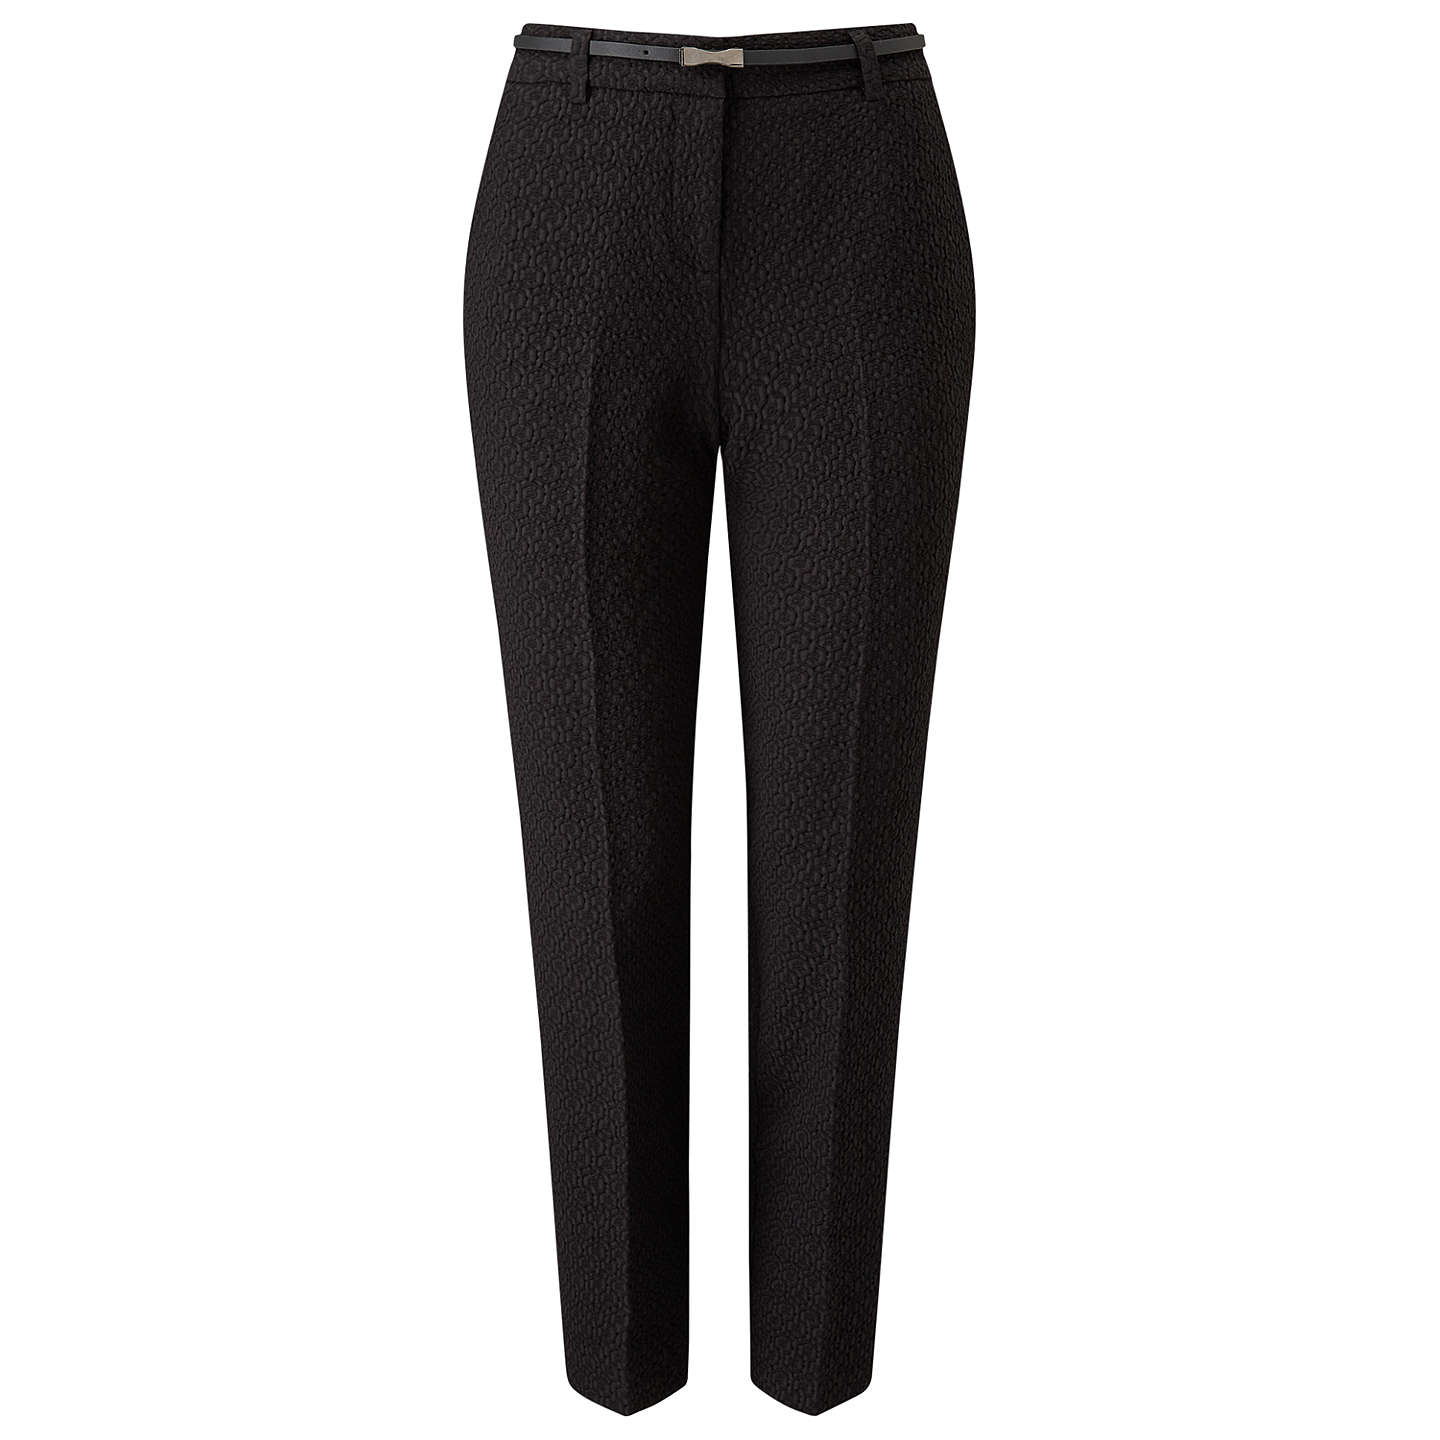 BuyPhase Eight Alice Jacquard Belted Trousers, Black, 8 Online at johnlewis.com